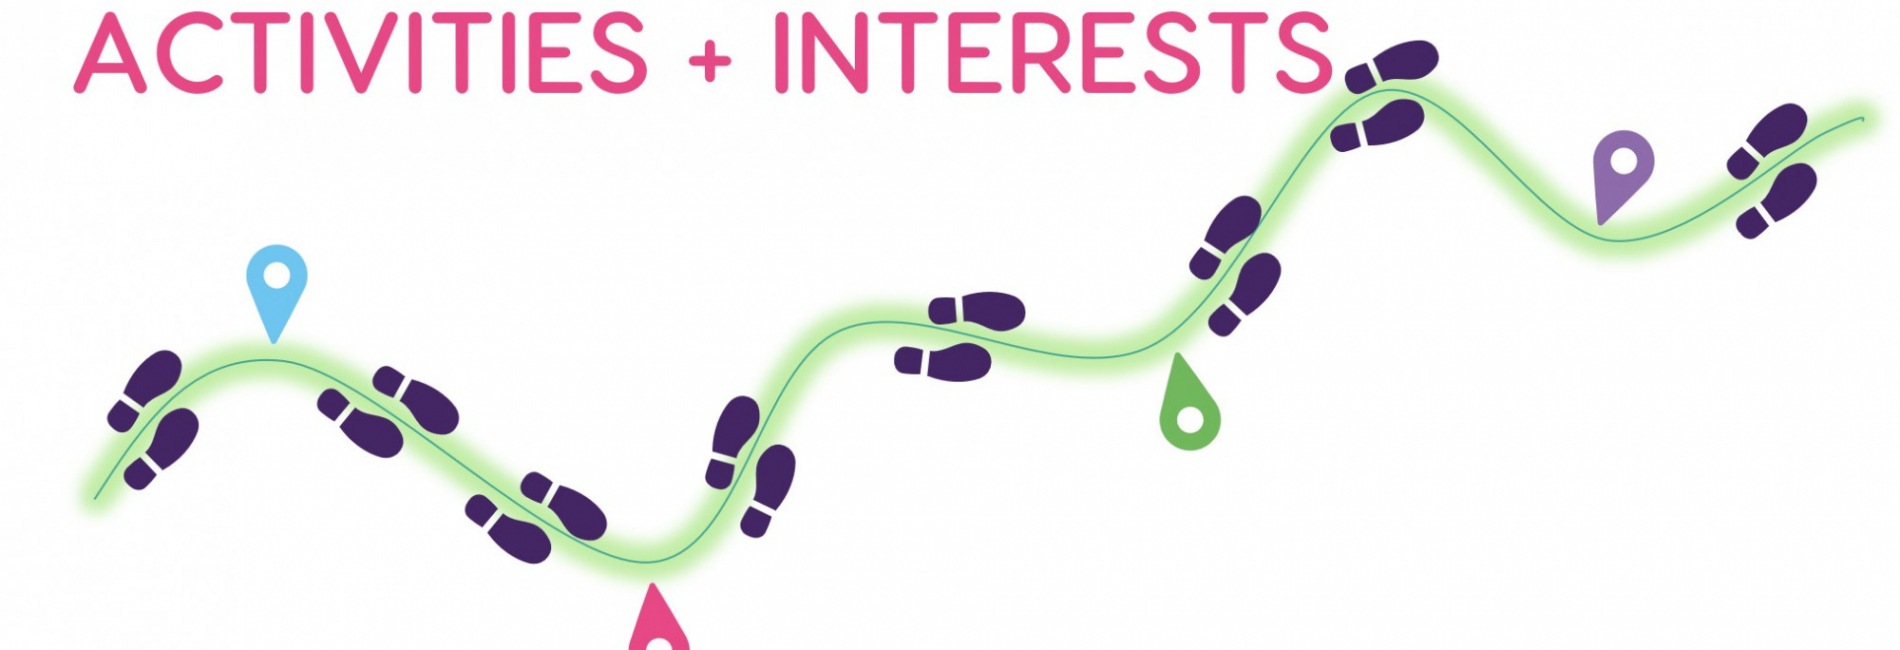 Activities and Interests: Our pathway, stage 2